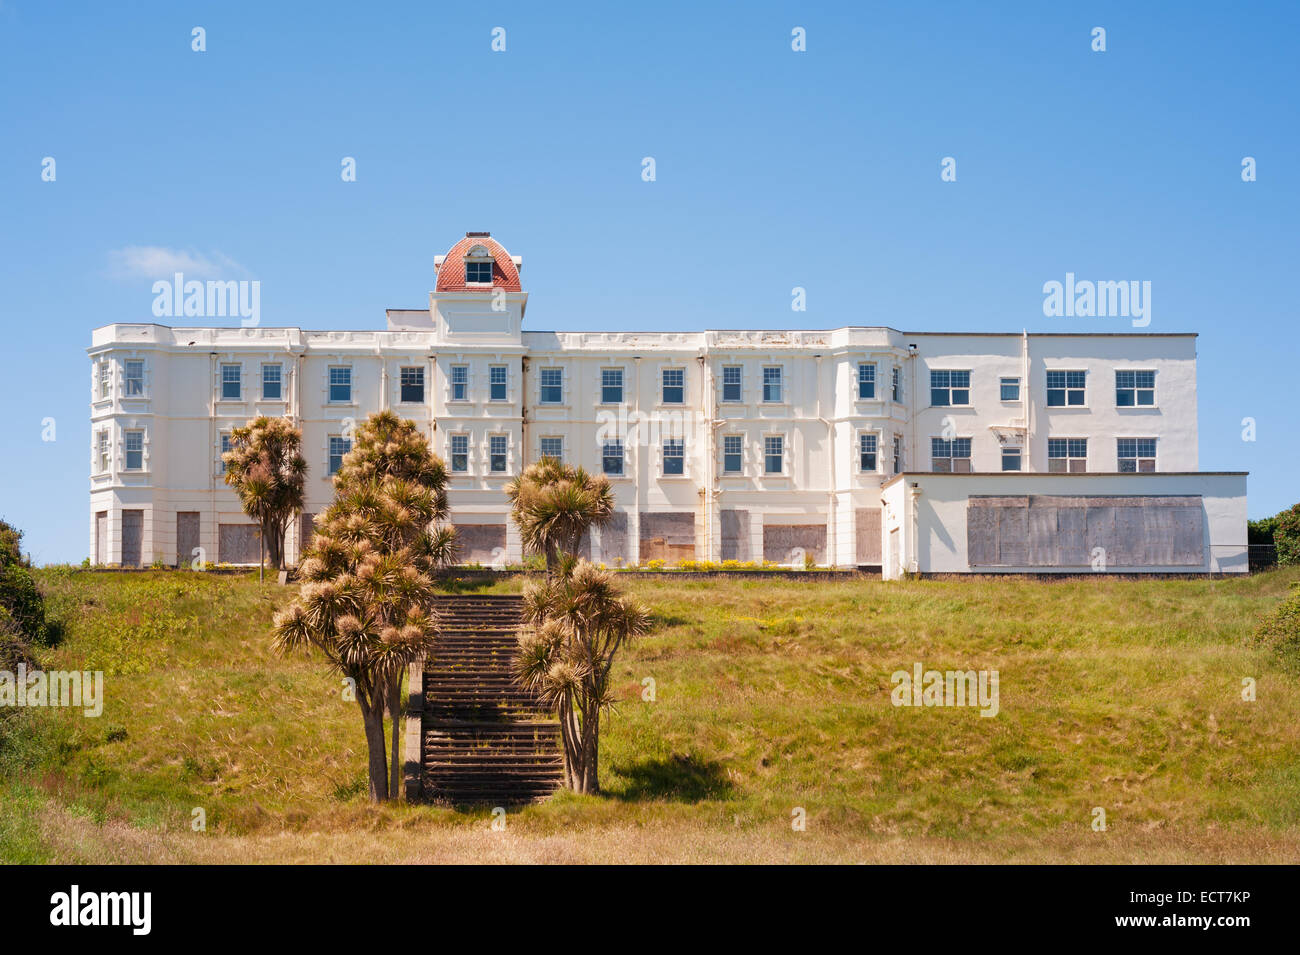 Isle of Man - The Grand Island Hotel, Ramsey - closed & abandoned before demolition. From the days of the mass - Stock Image